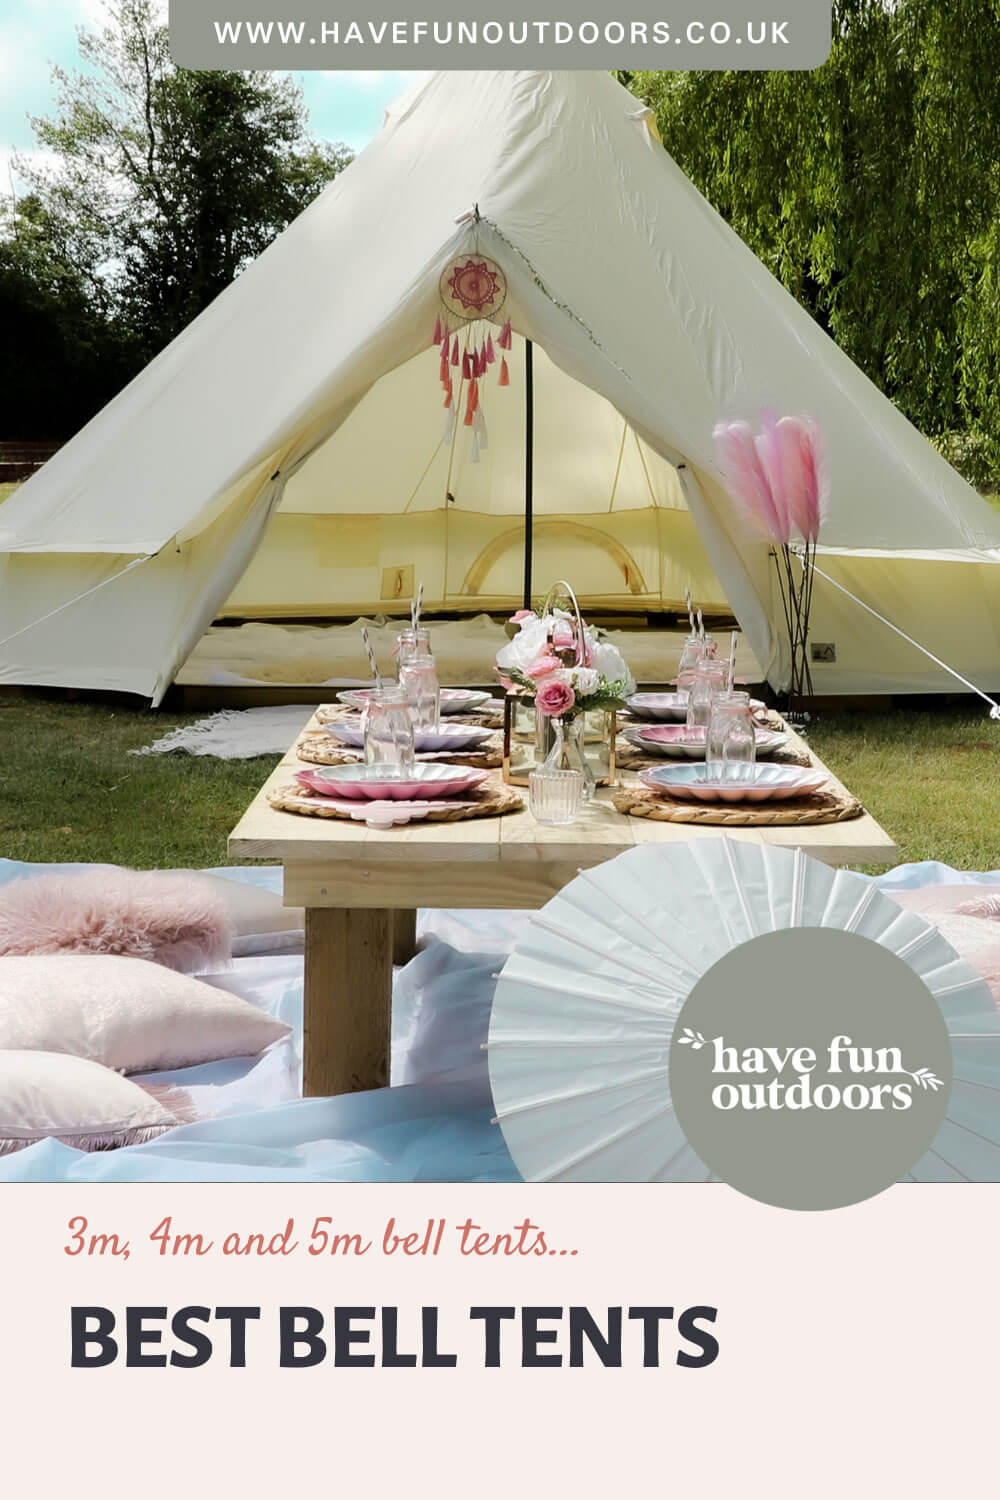 Best Bell Tents, 3m, 4m and 5m Bell Tents